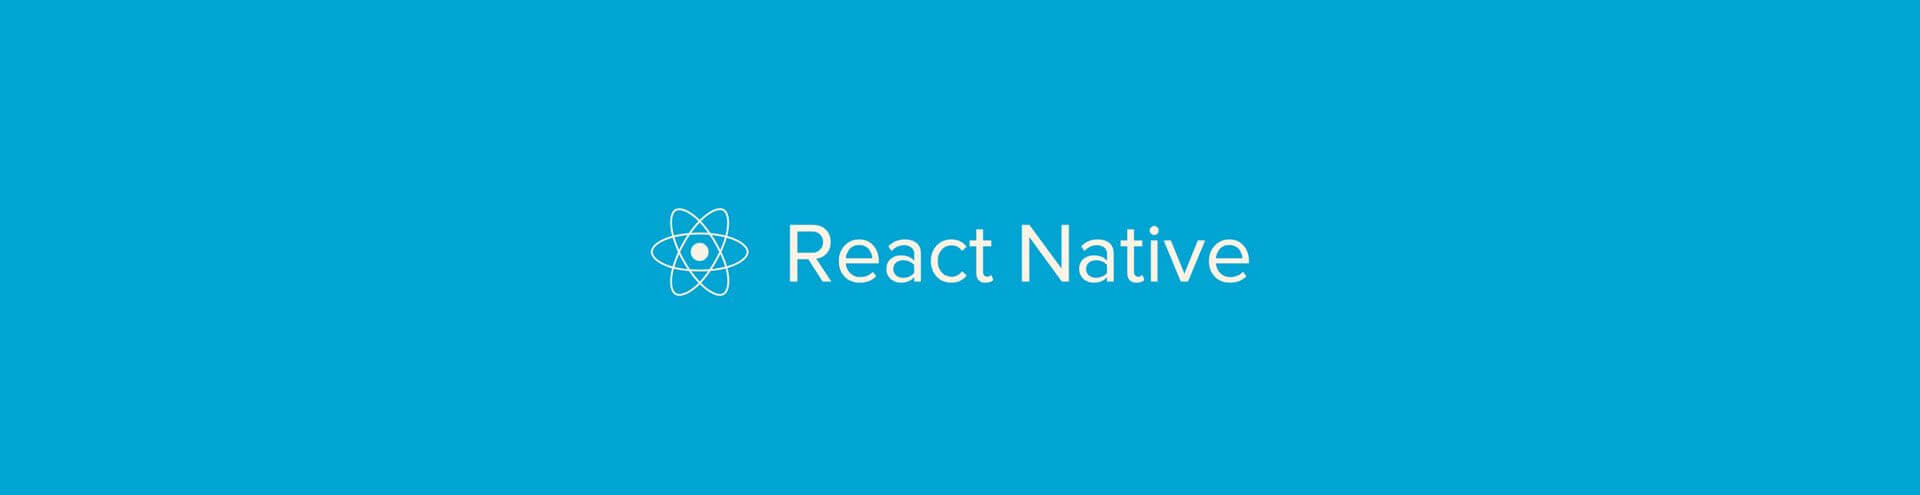 10 React Native-Open-Source-Projekte, die Sie kennen sollten